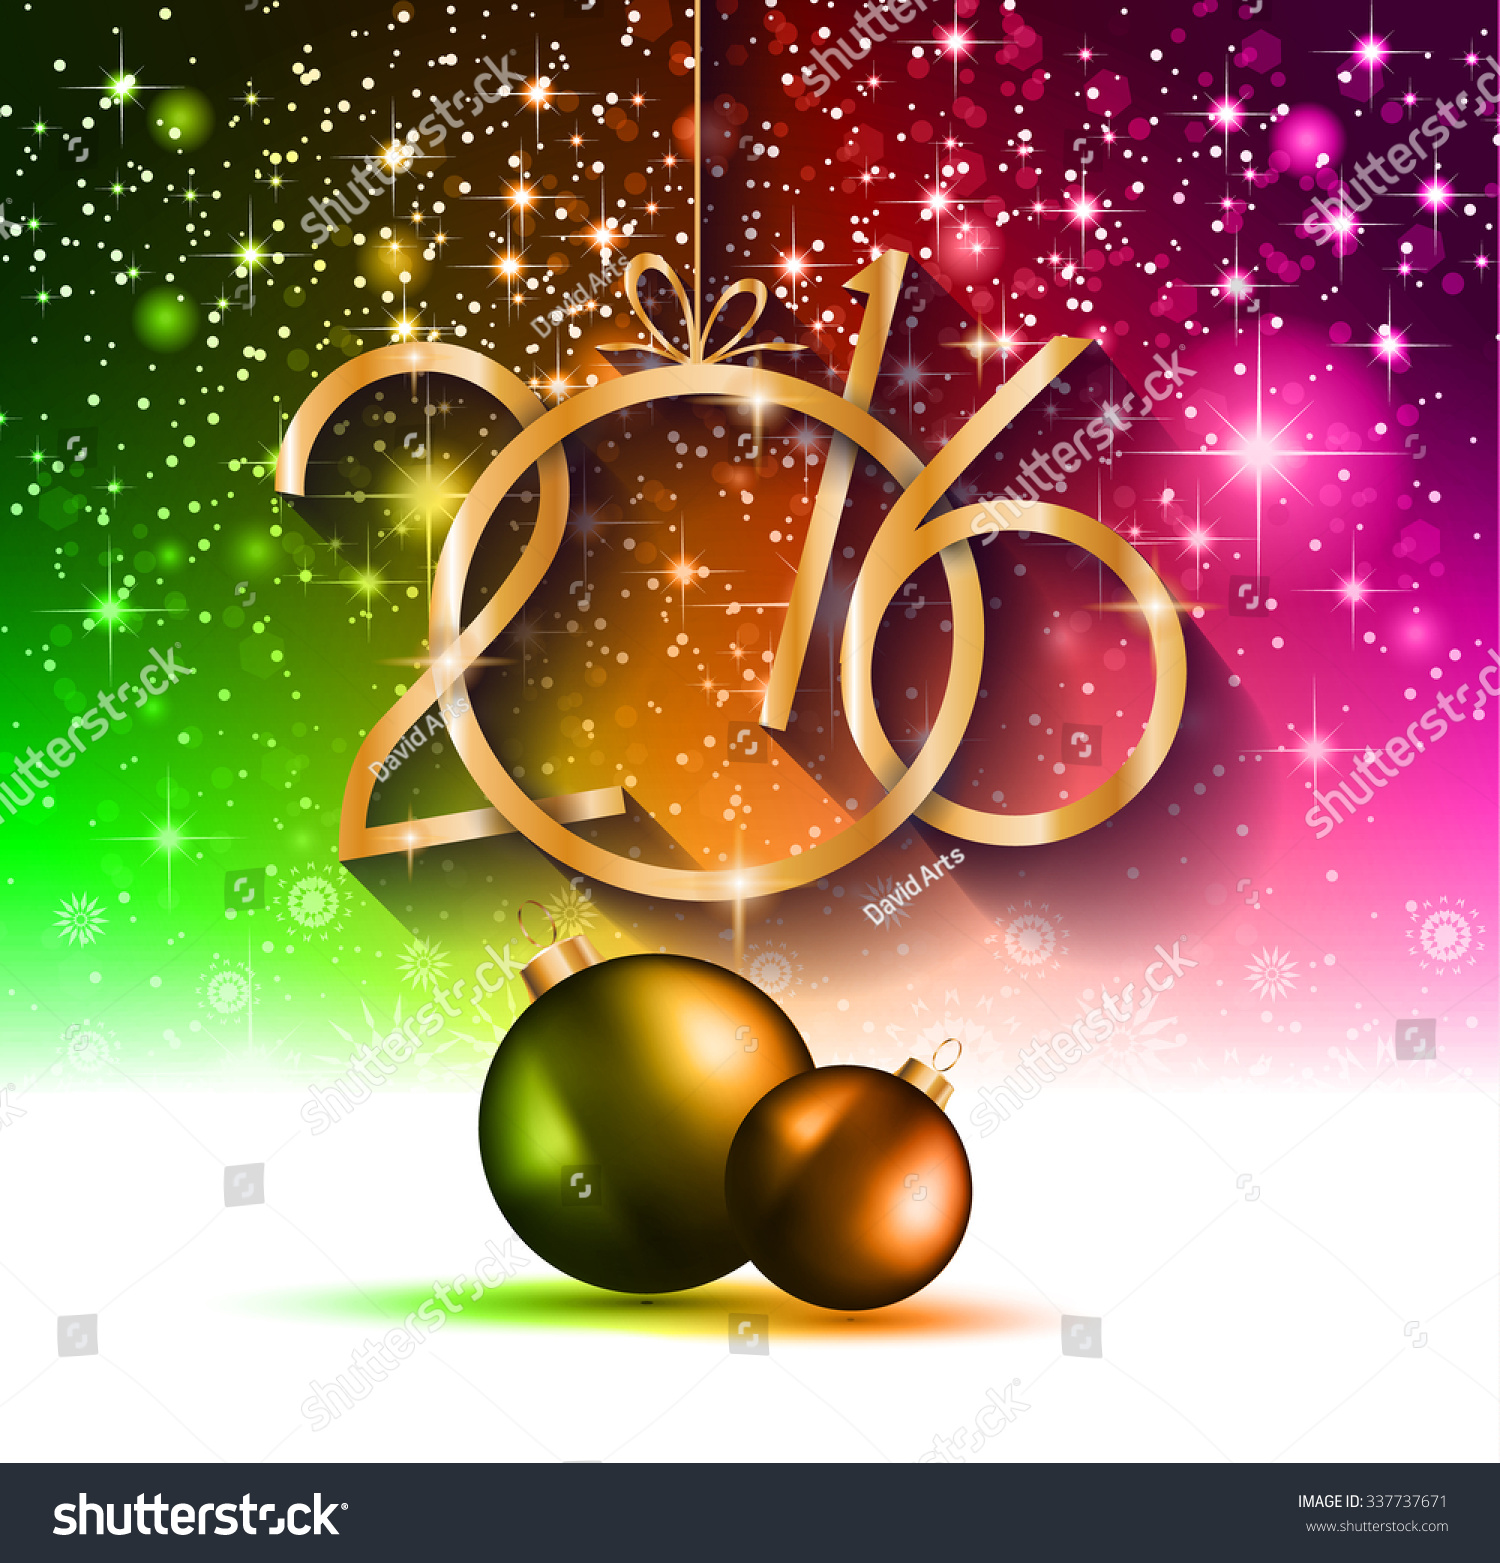 2016 happy new year and merry christmas background for your seasonal wallpapers greetings card